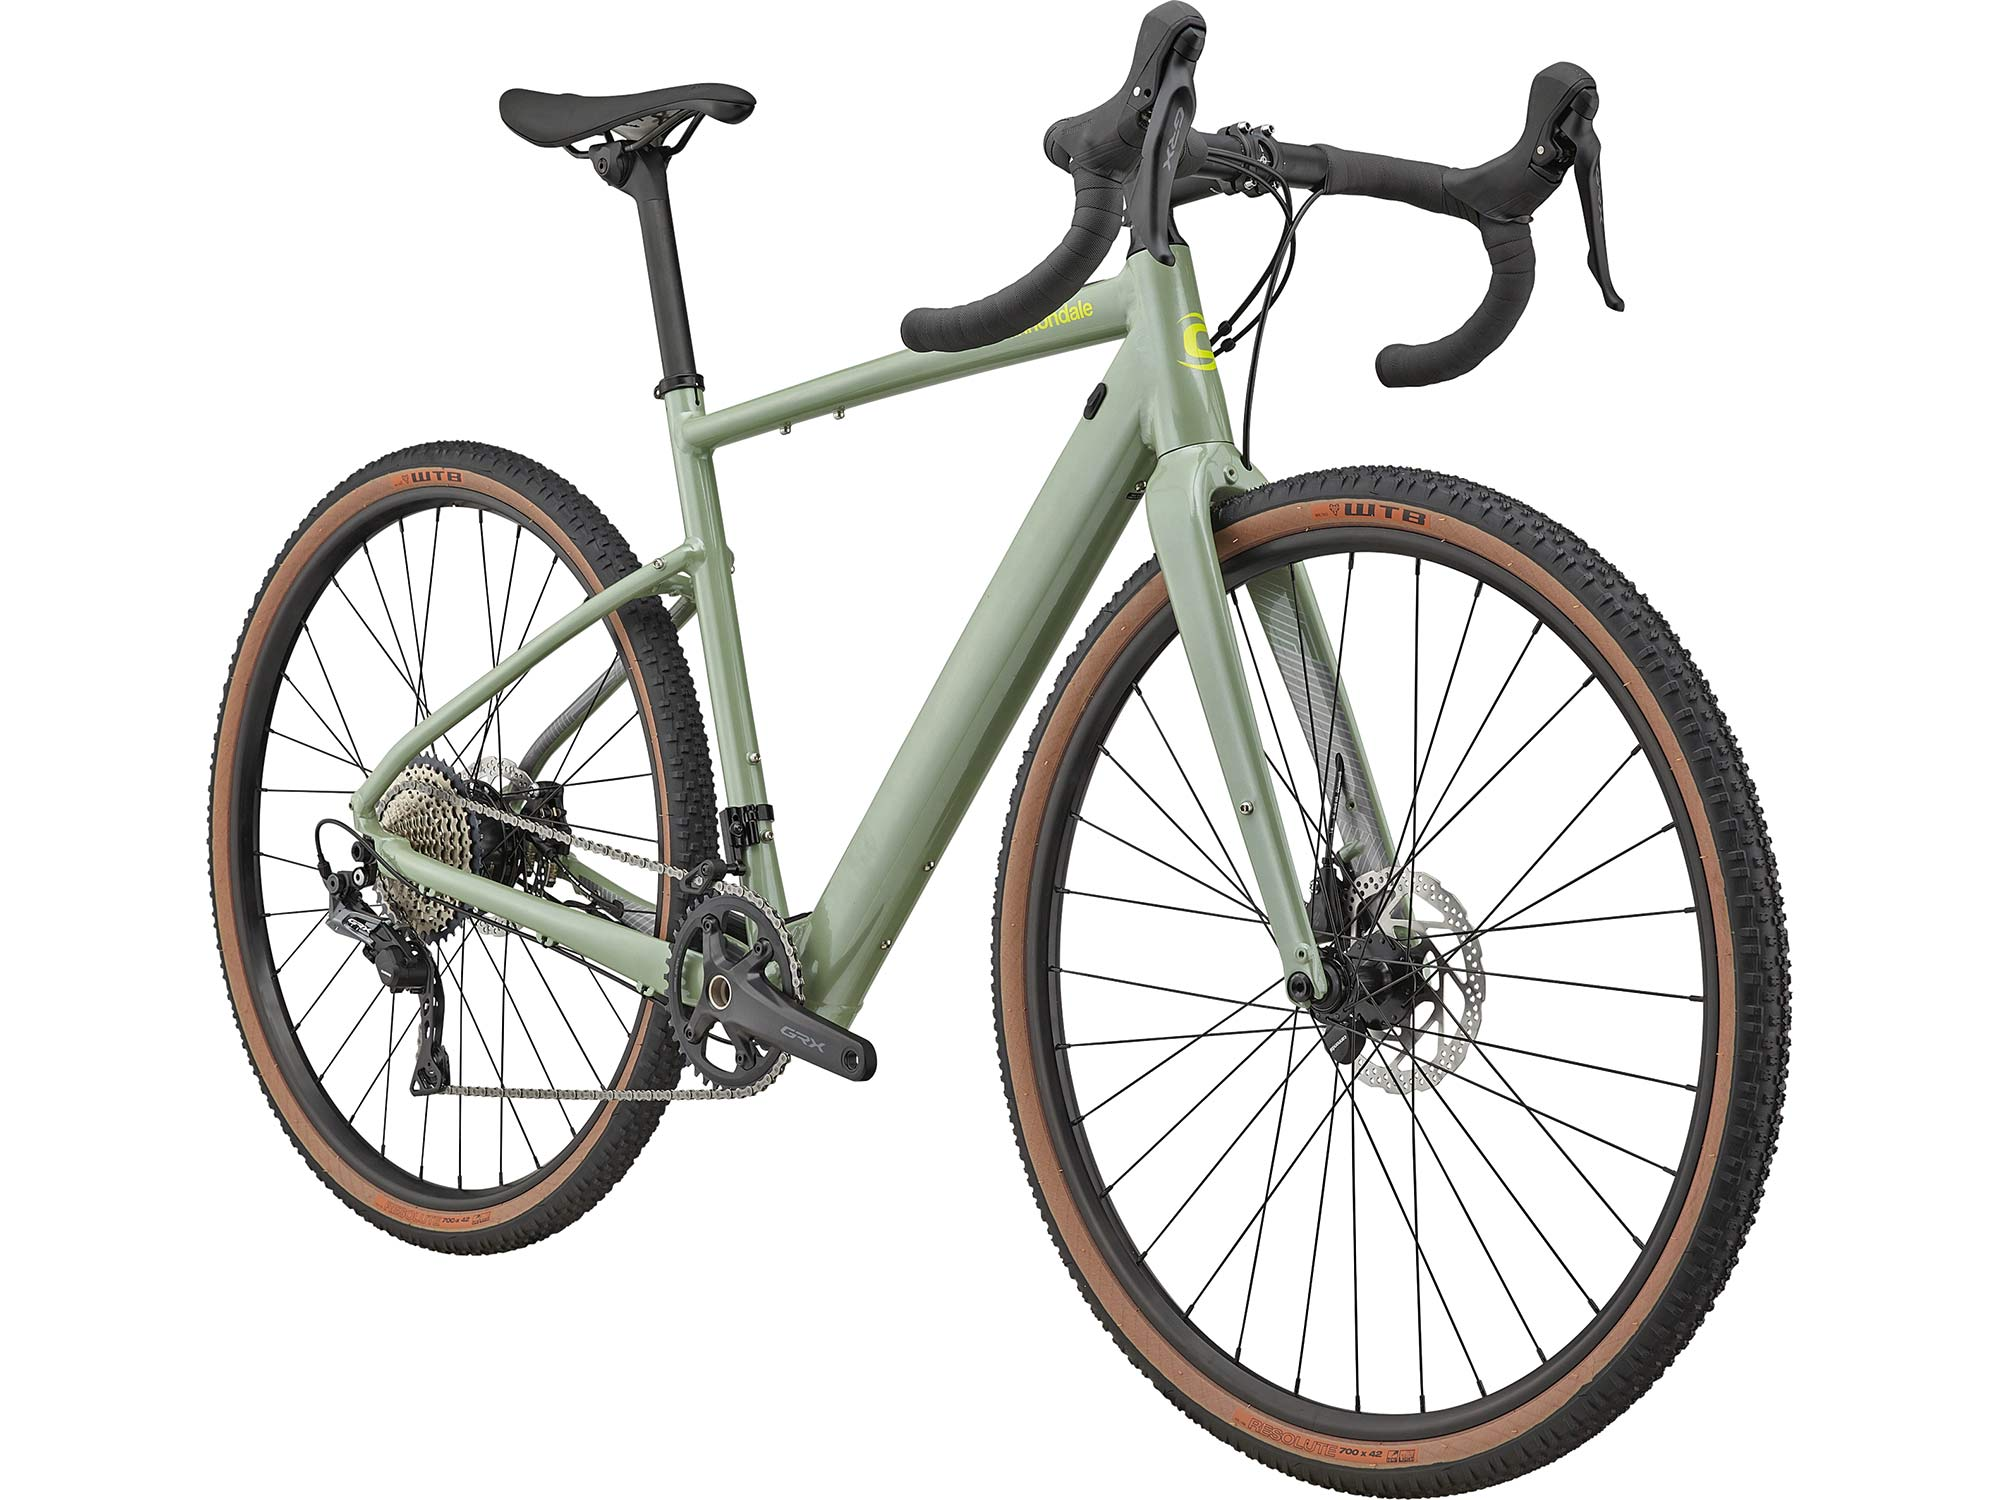 Cannondale Topstone Neo SL lightweight affordable alloy gravel e-bike,1 complete angled